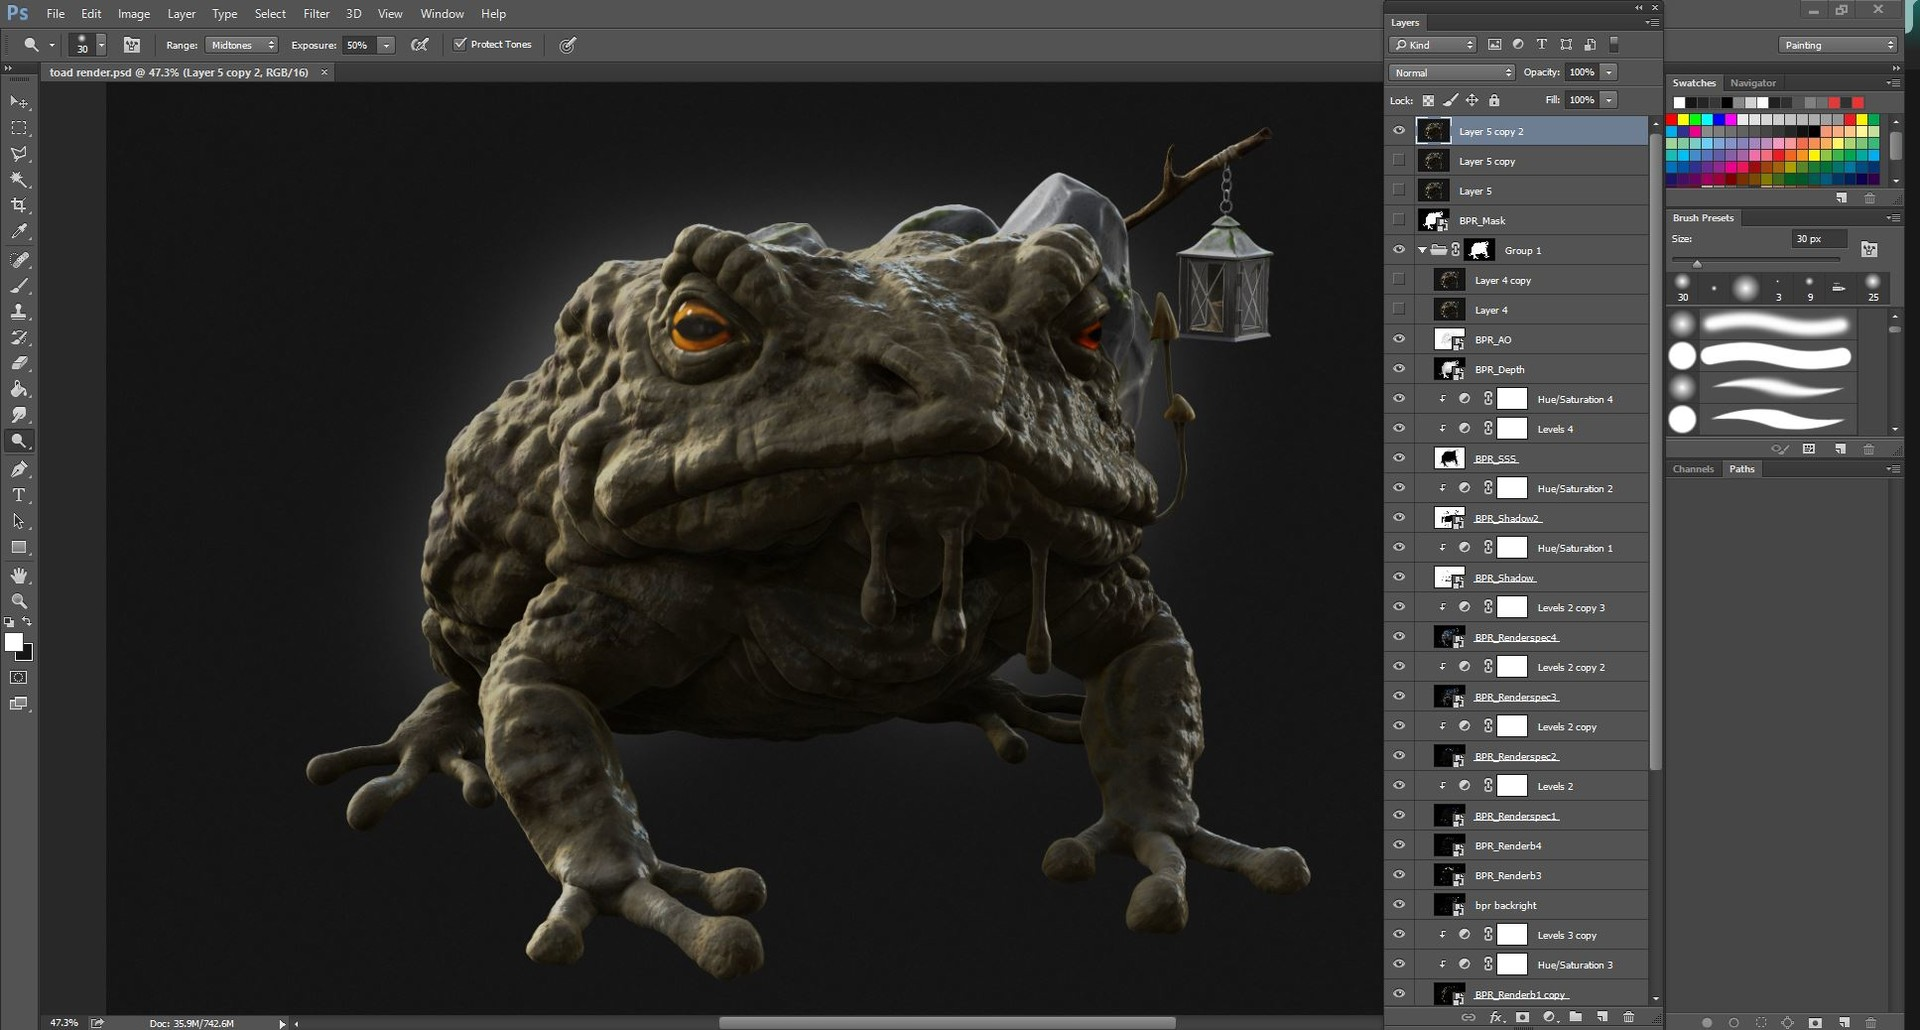 Render set-up in Photoshop showing a bit of my layer workflow